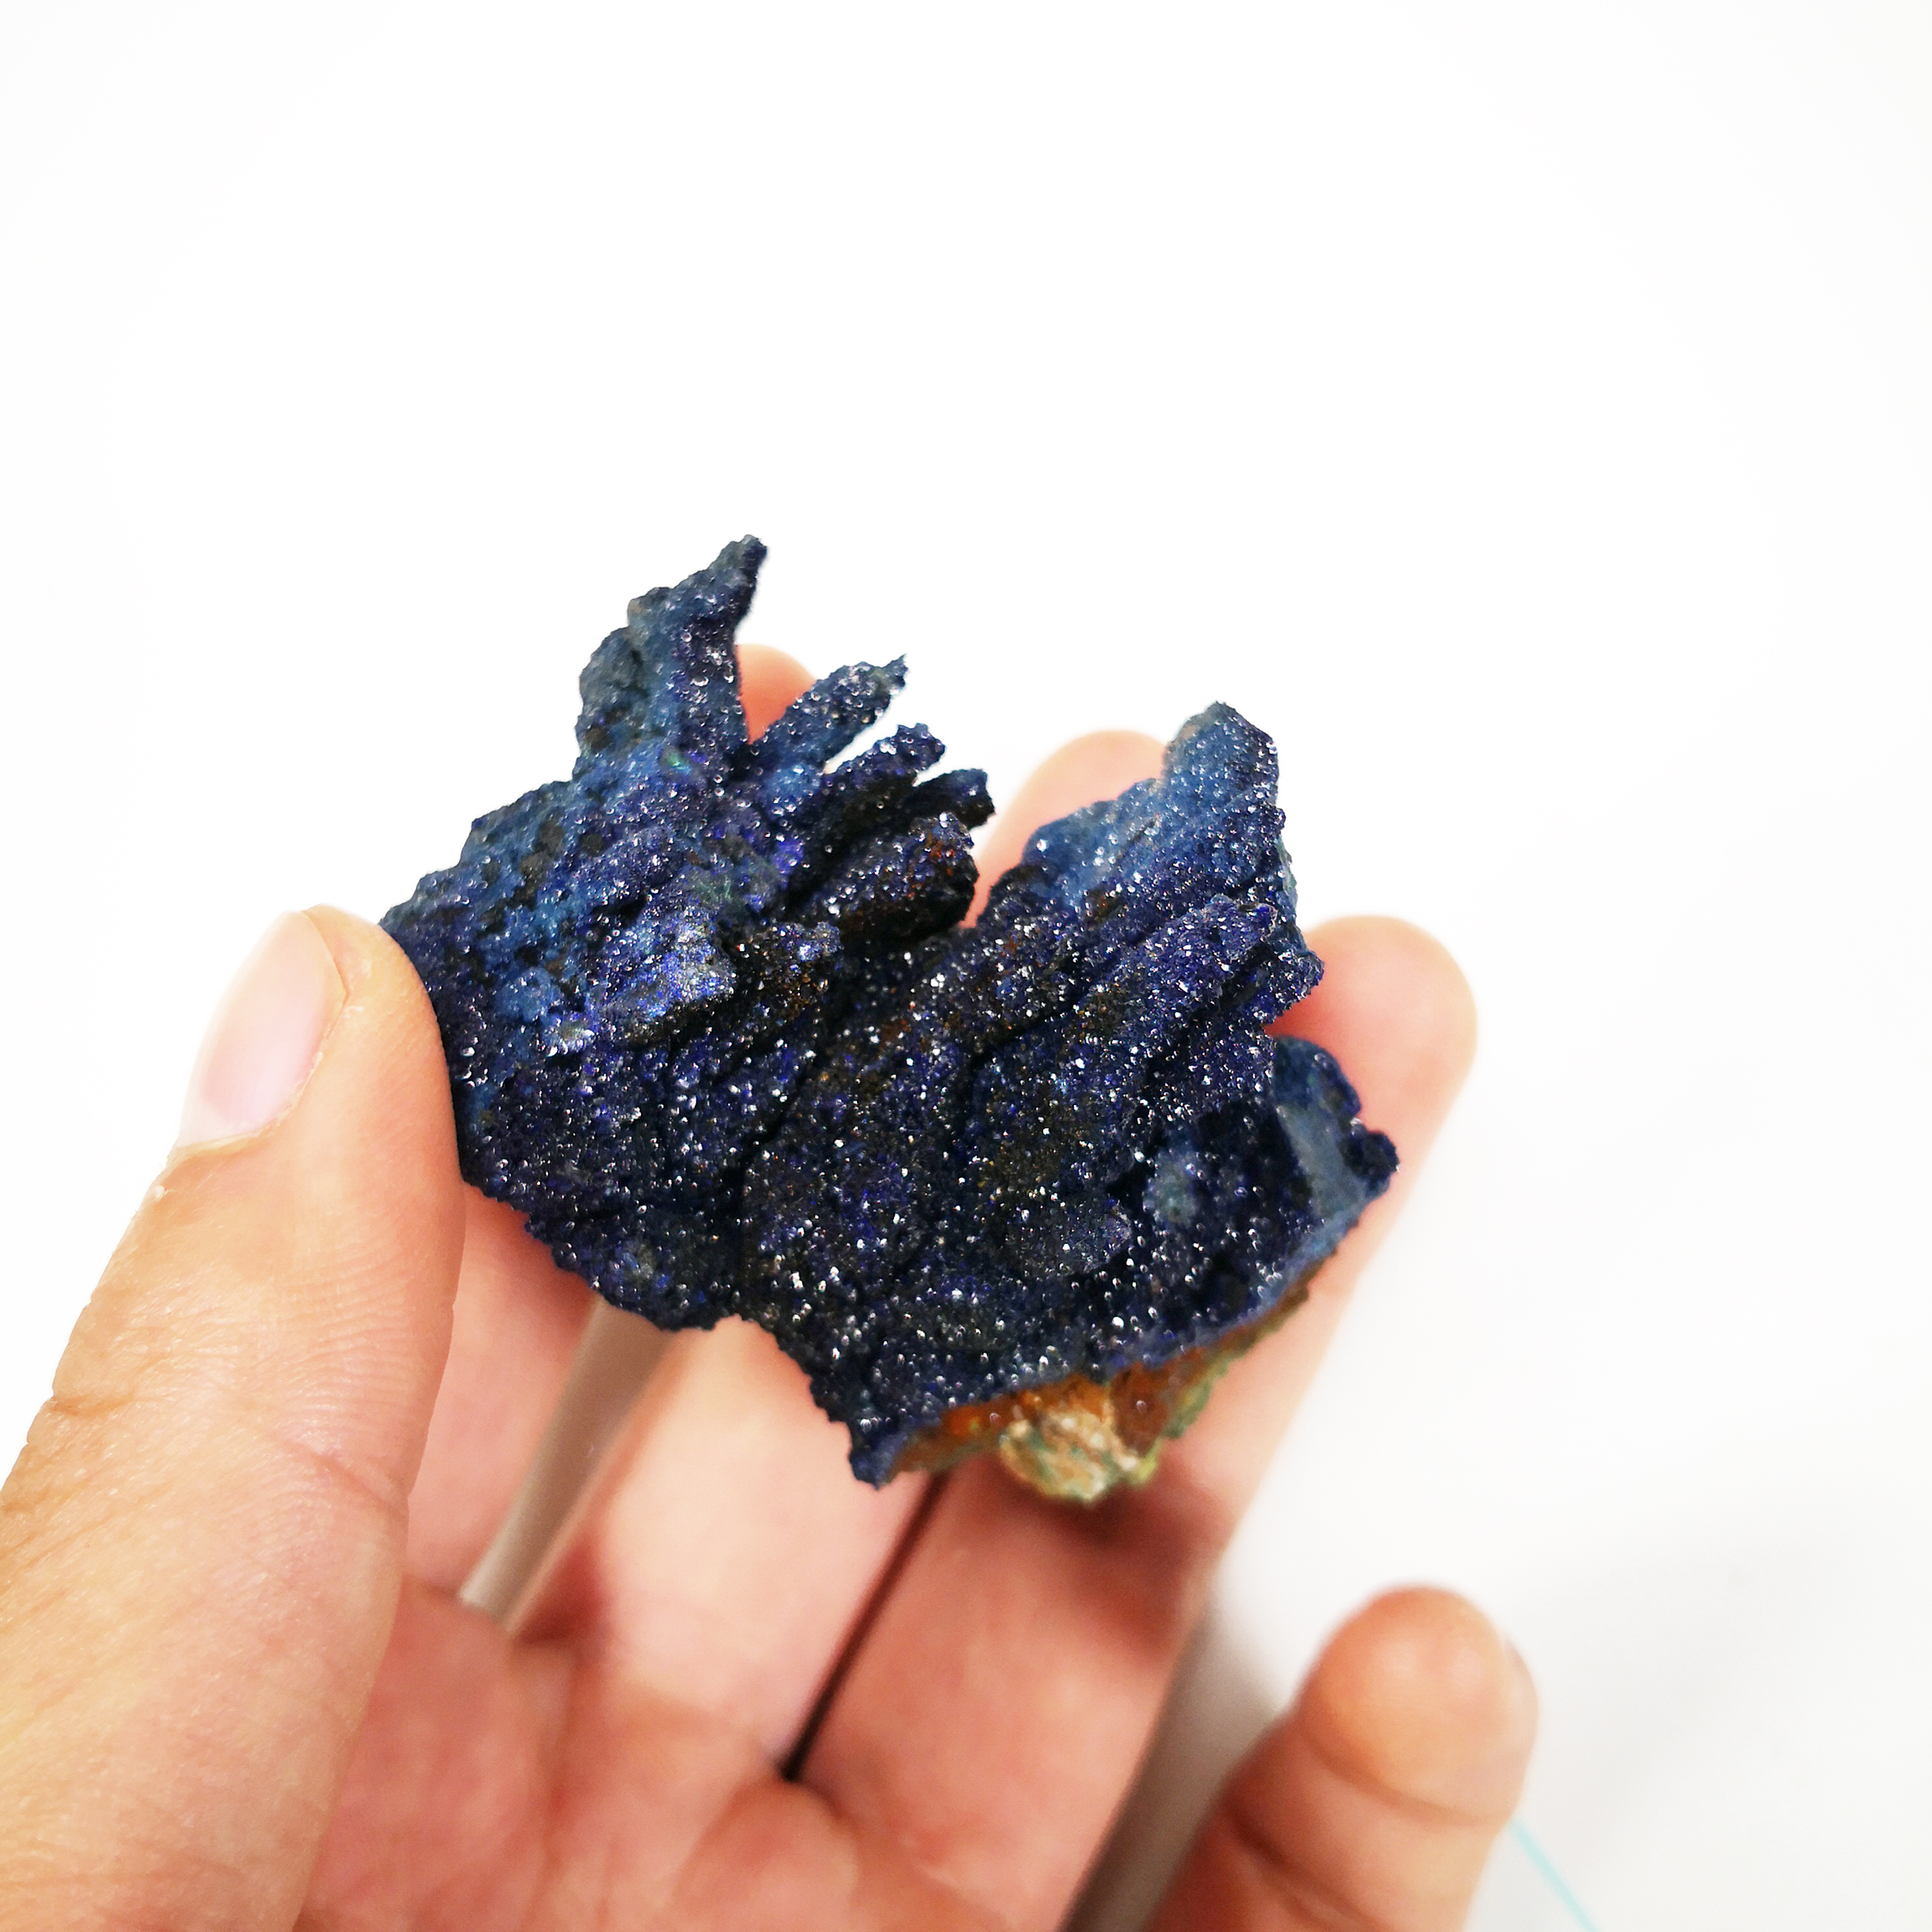 91g NATURAL Stones and Minerals Rock AZURITE SPECIMEN CRYSTAL RARE ORE UNIQUE Specimens LAOS C1 44